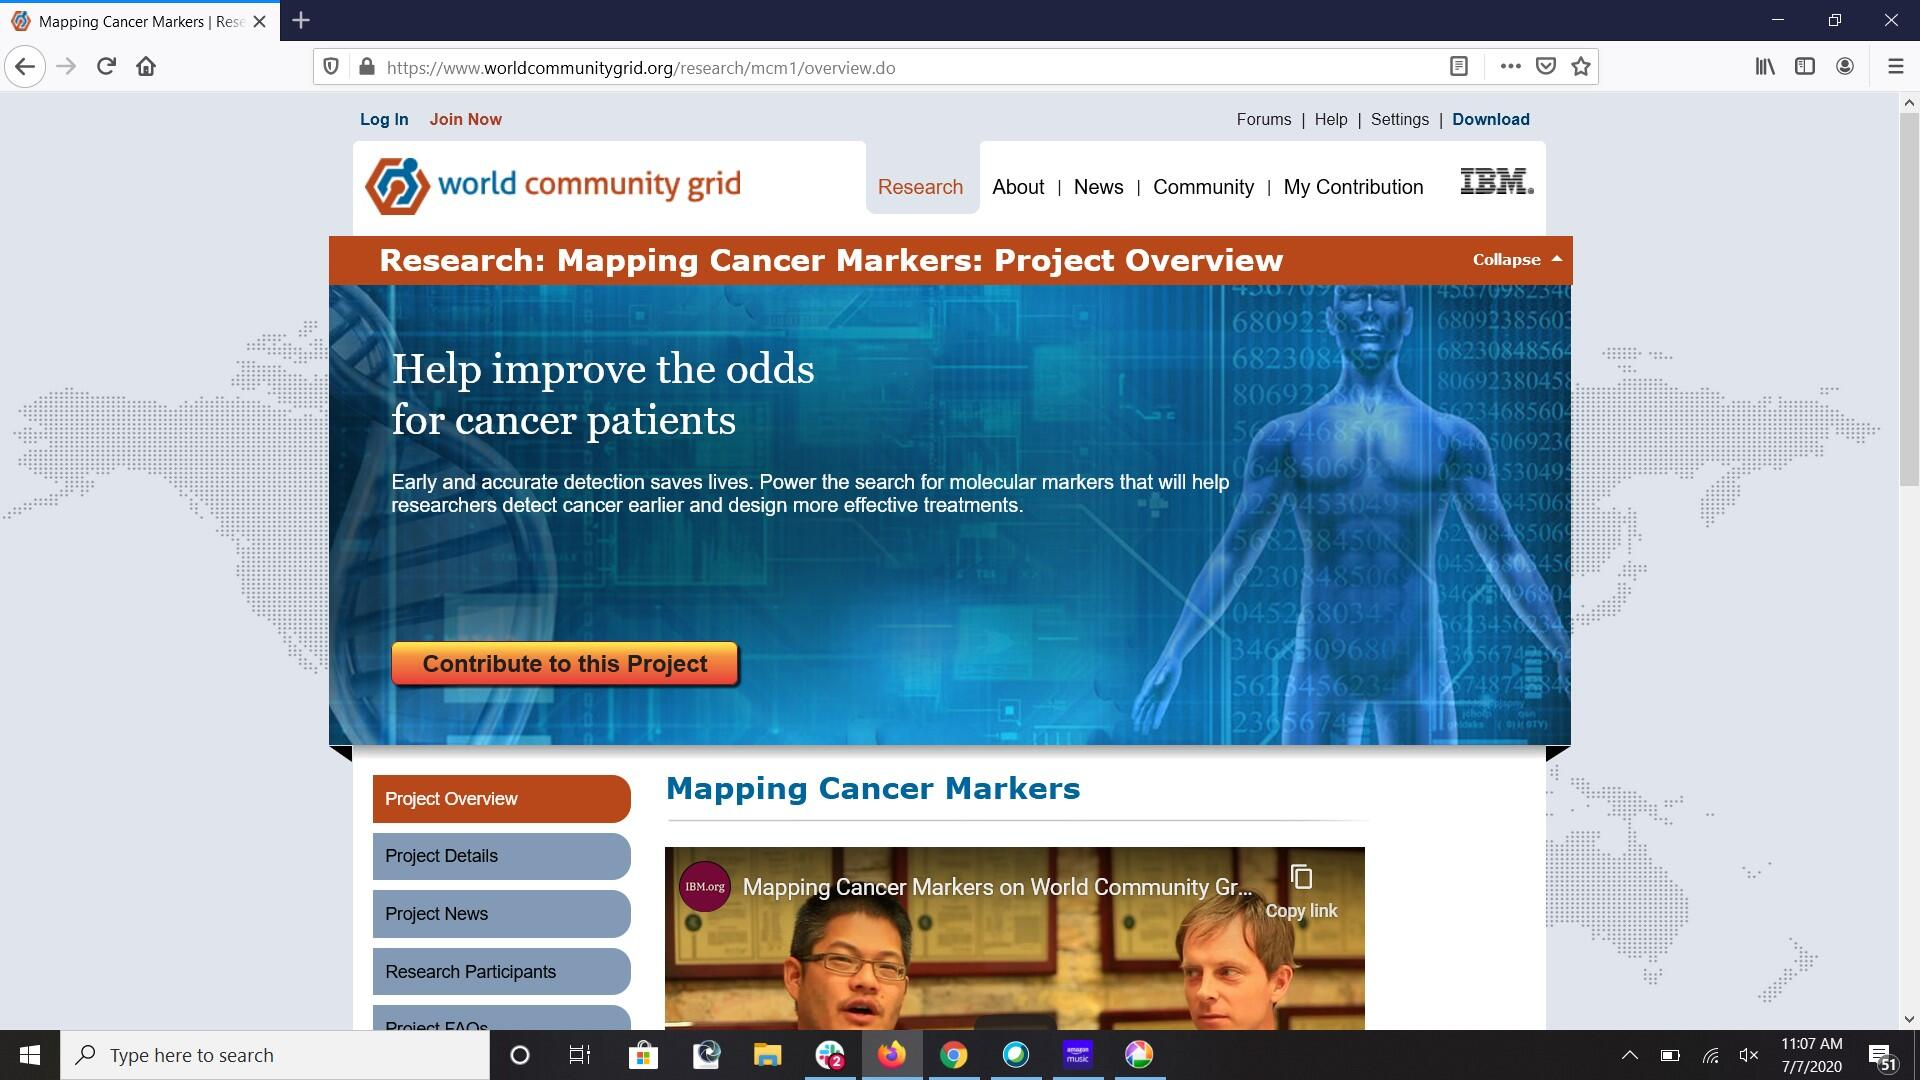 wcg-screenshot-mapping-cancer-markers